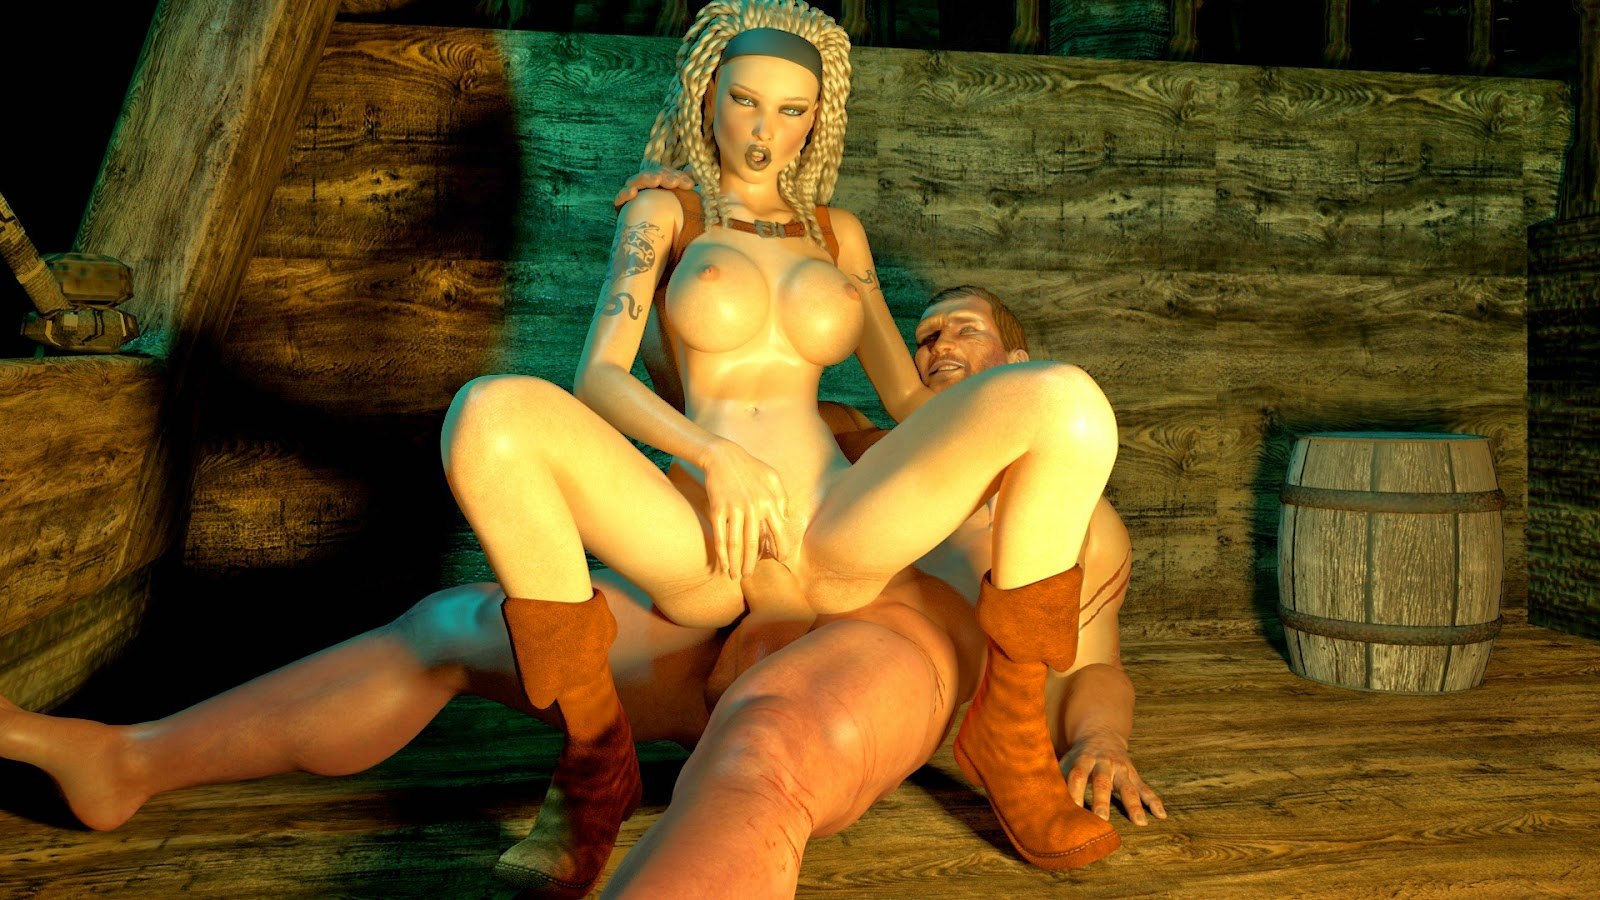 Naked women in online games play free hentai photo